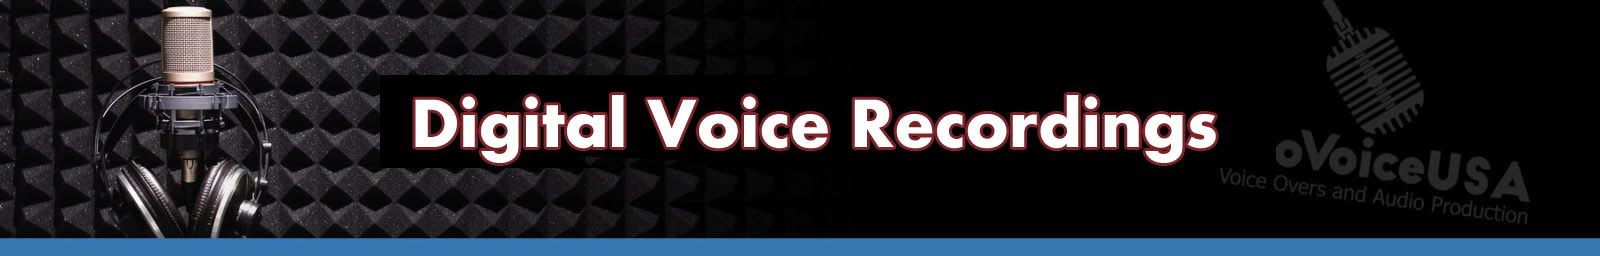 Digital Voice Recordings | American Voice Recording Service | ProVoice USA